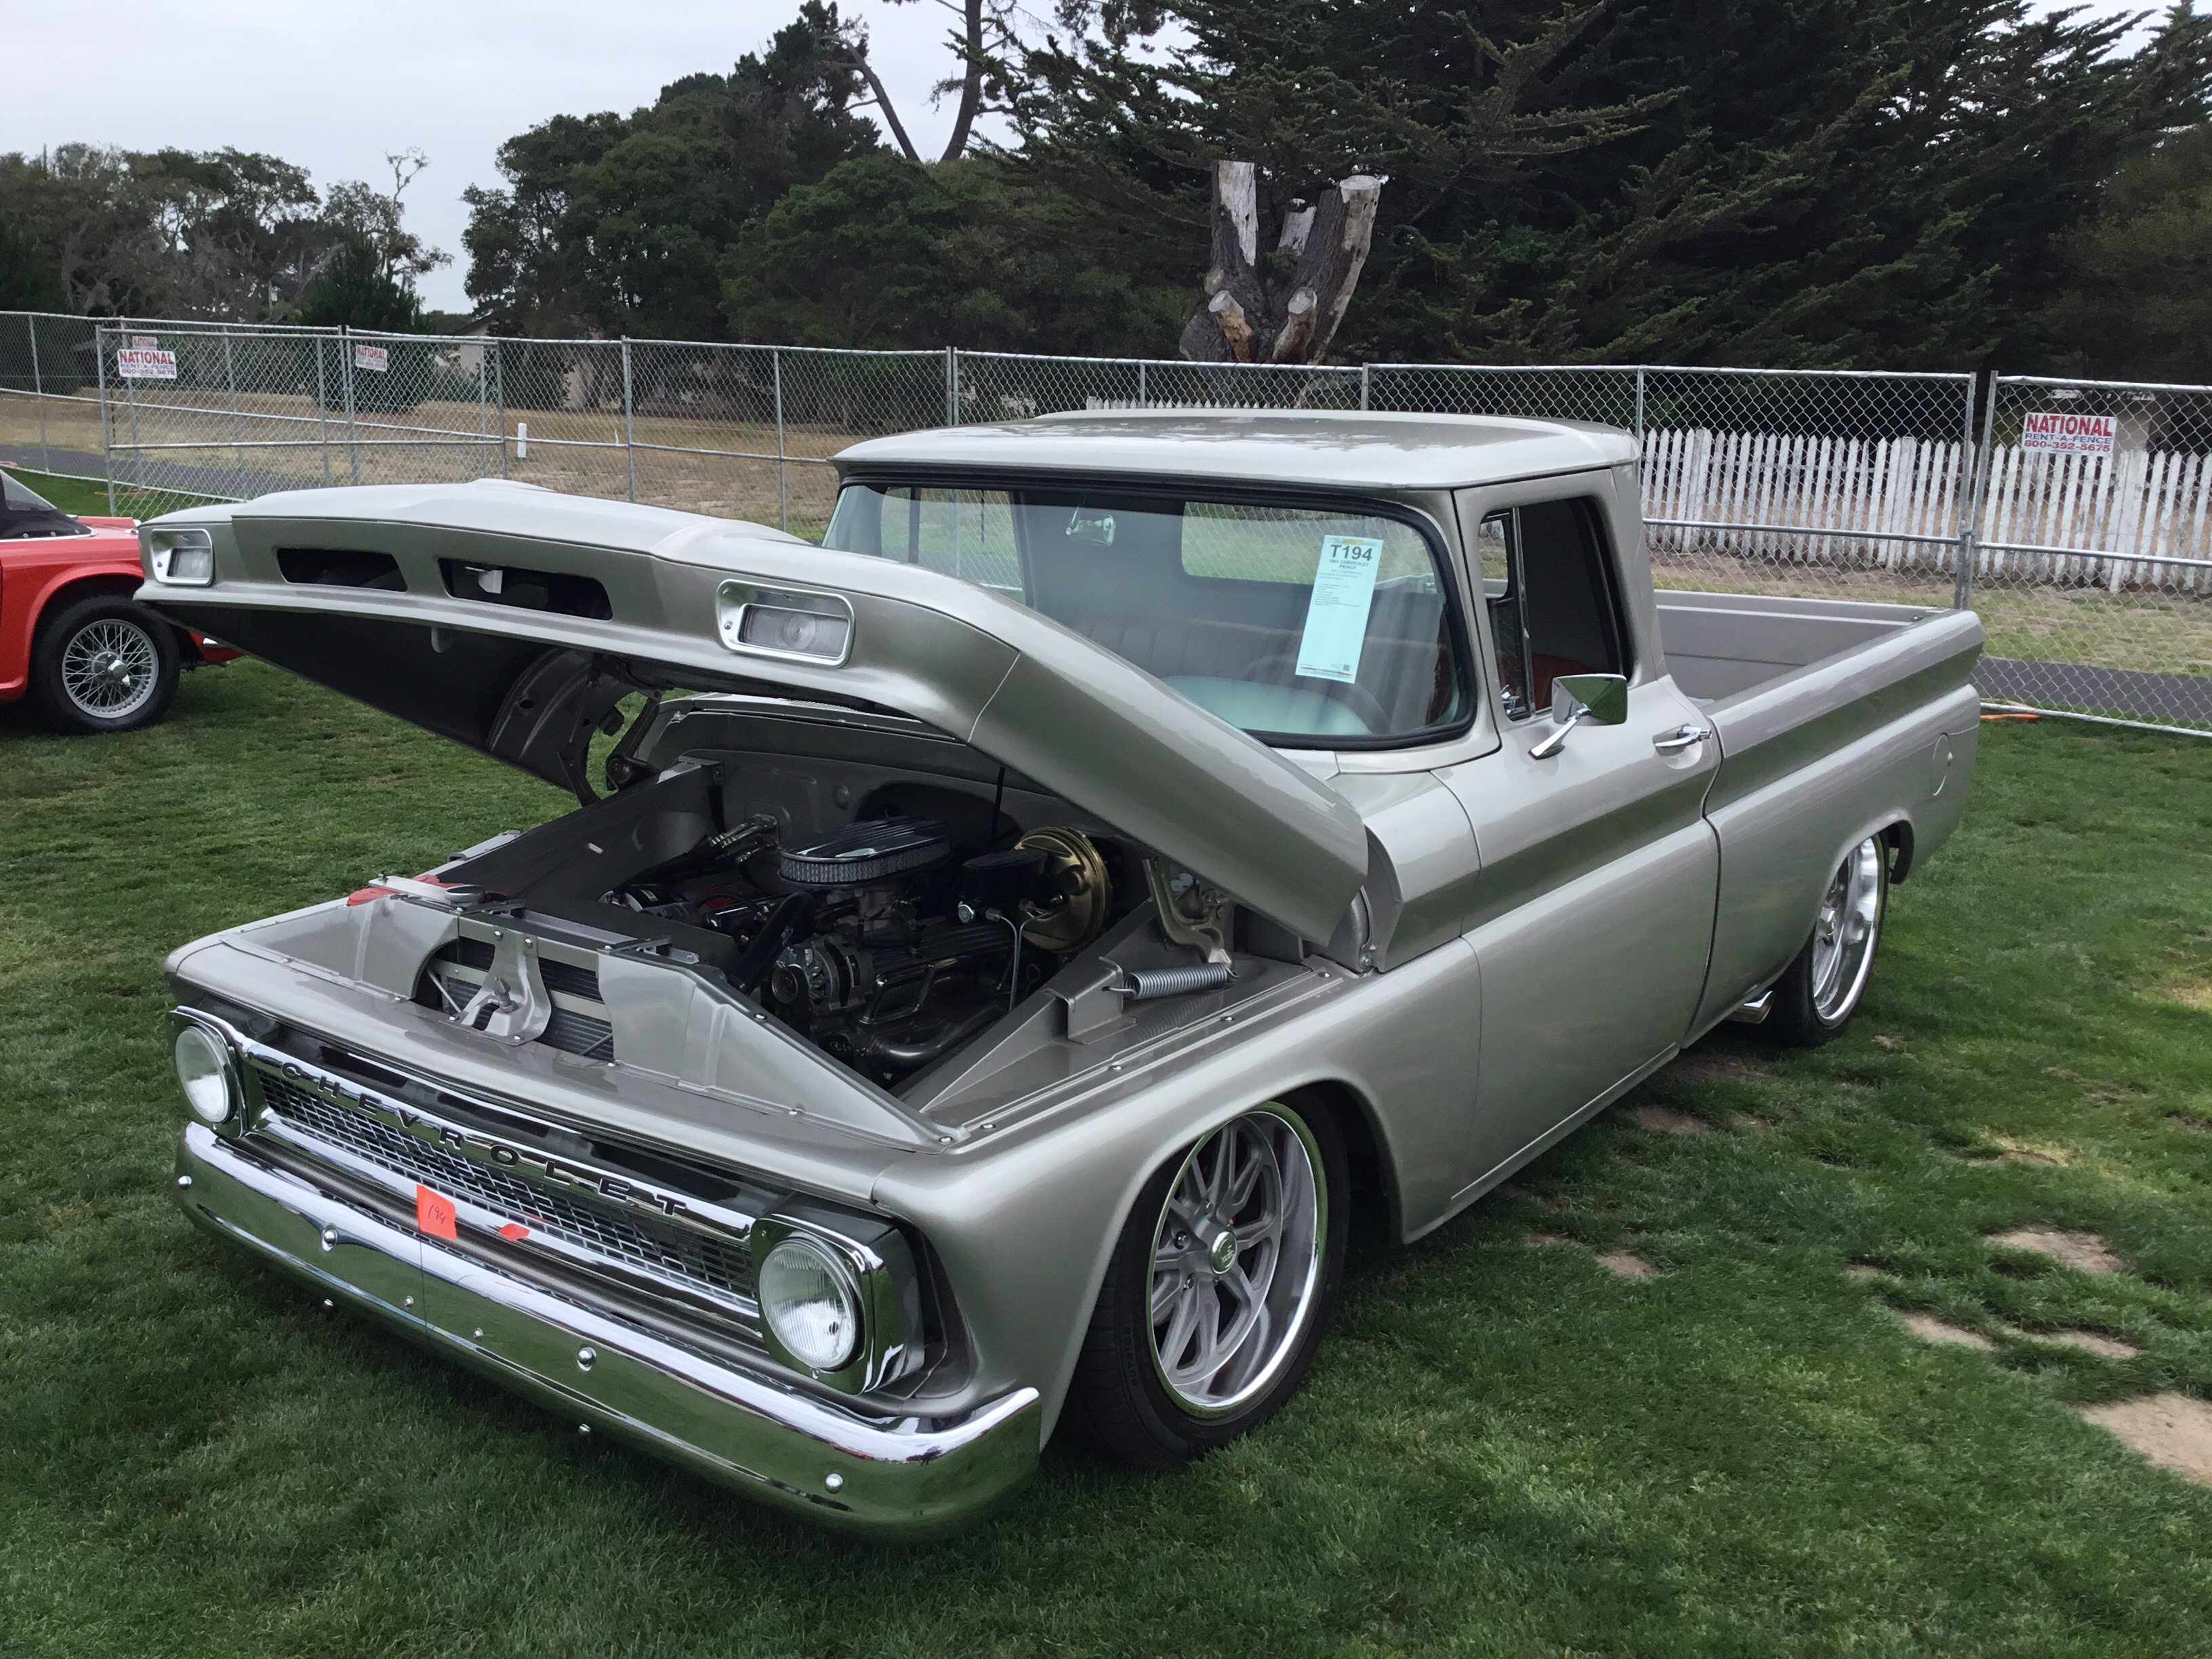 1962 Chevrolet C10 1 2 Ton Values Hagerty Valuation Tool Chevy Suburban For Sale 1963 Fleetside Pickup Modified